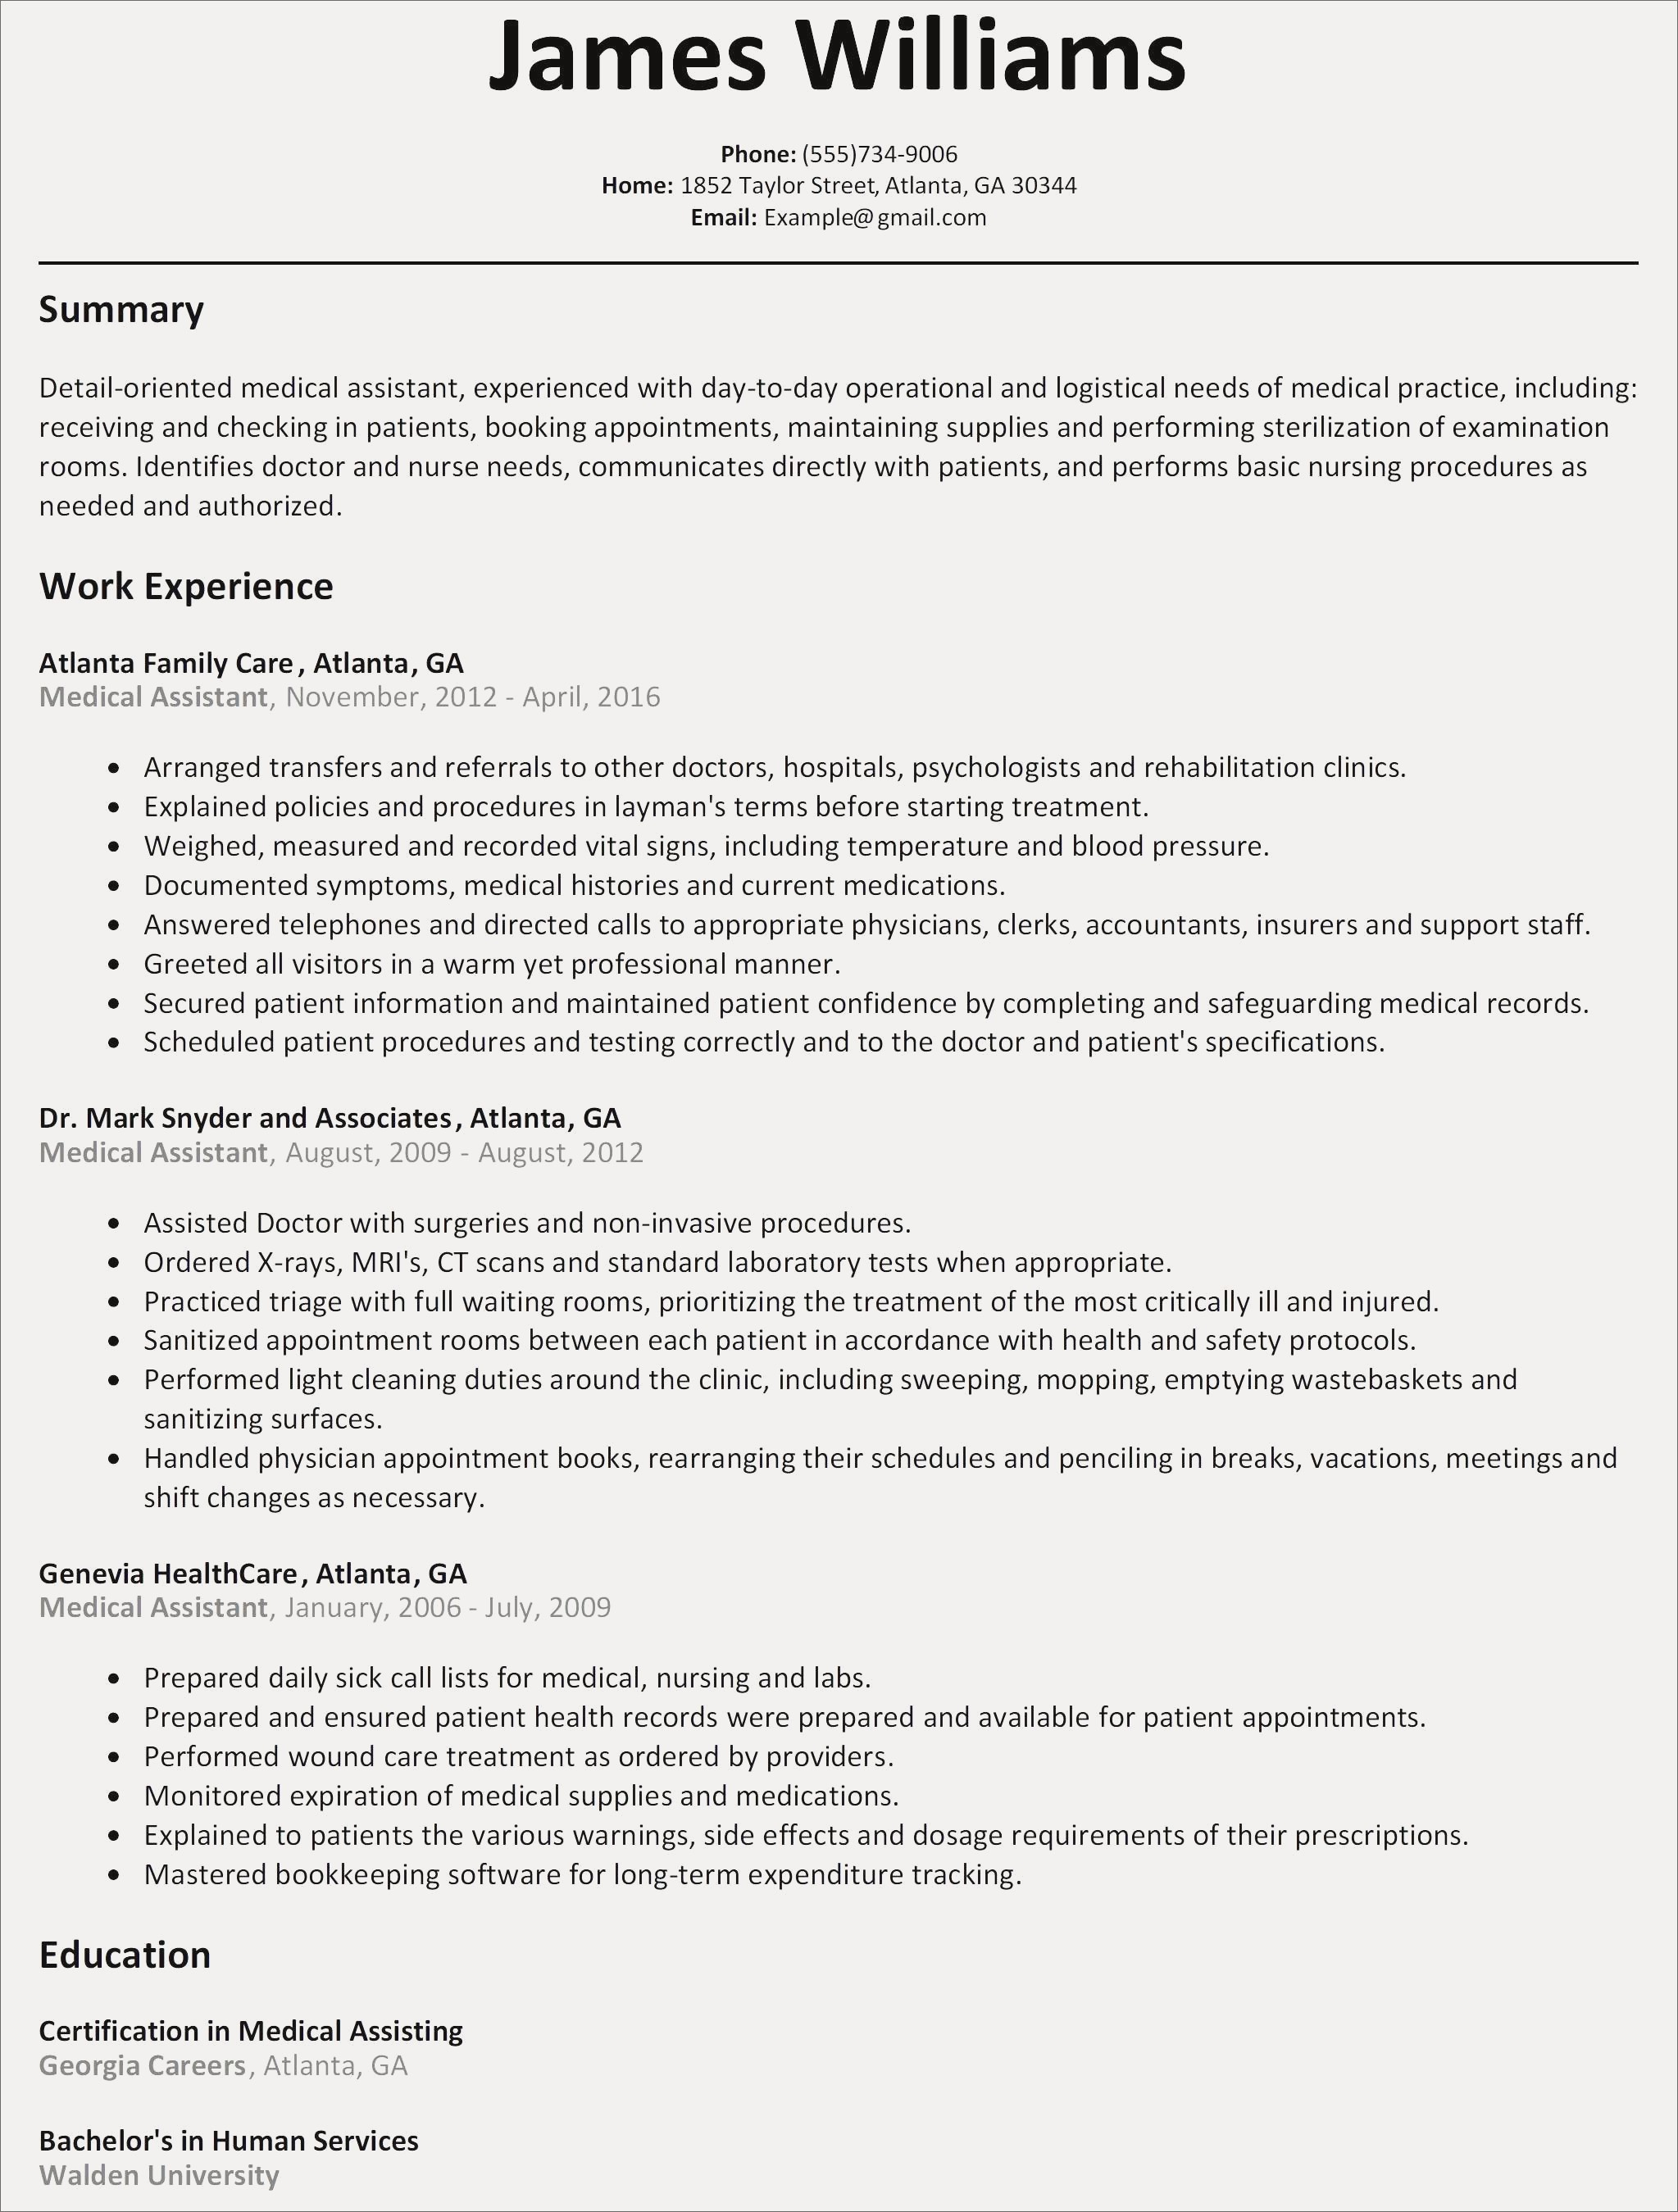 Resume Template for Engineers - Engineer Resume New Hr Resume Lovely Free Resume Examples Fresh